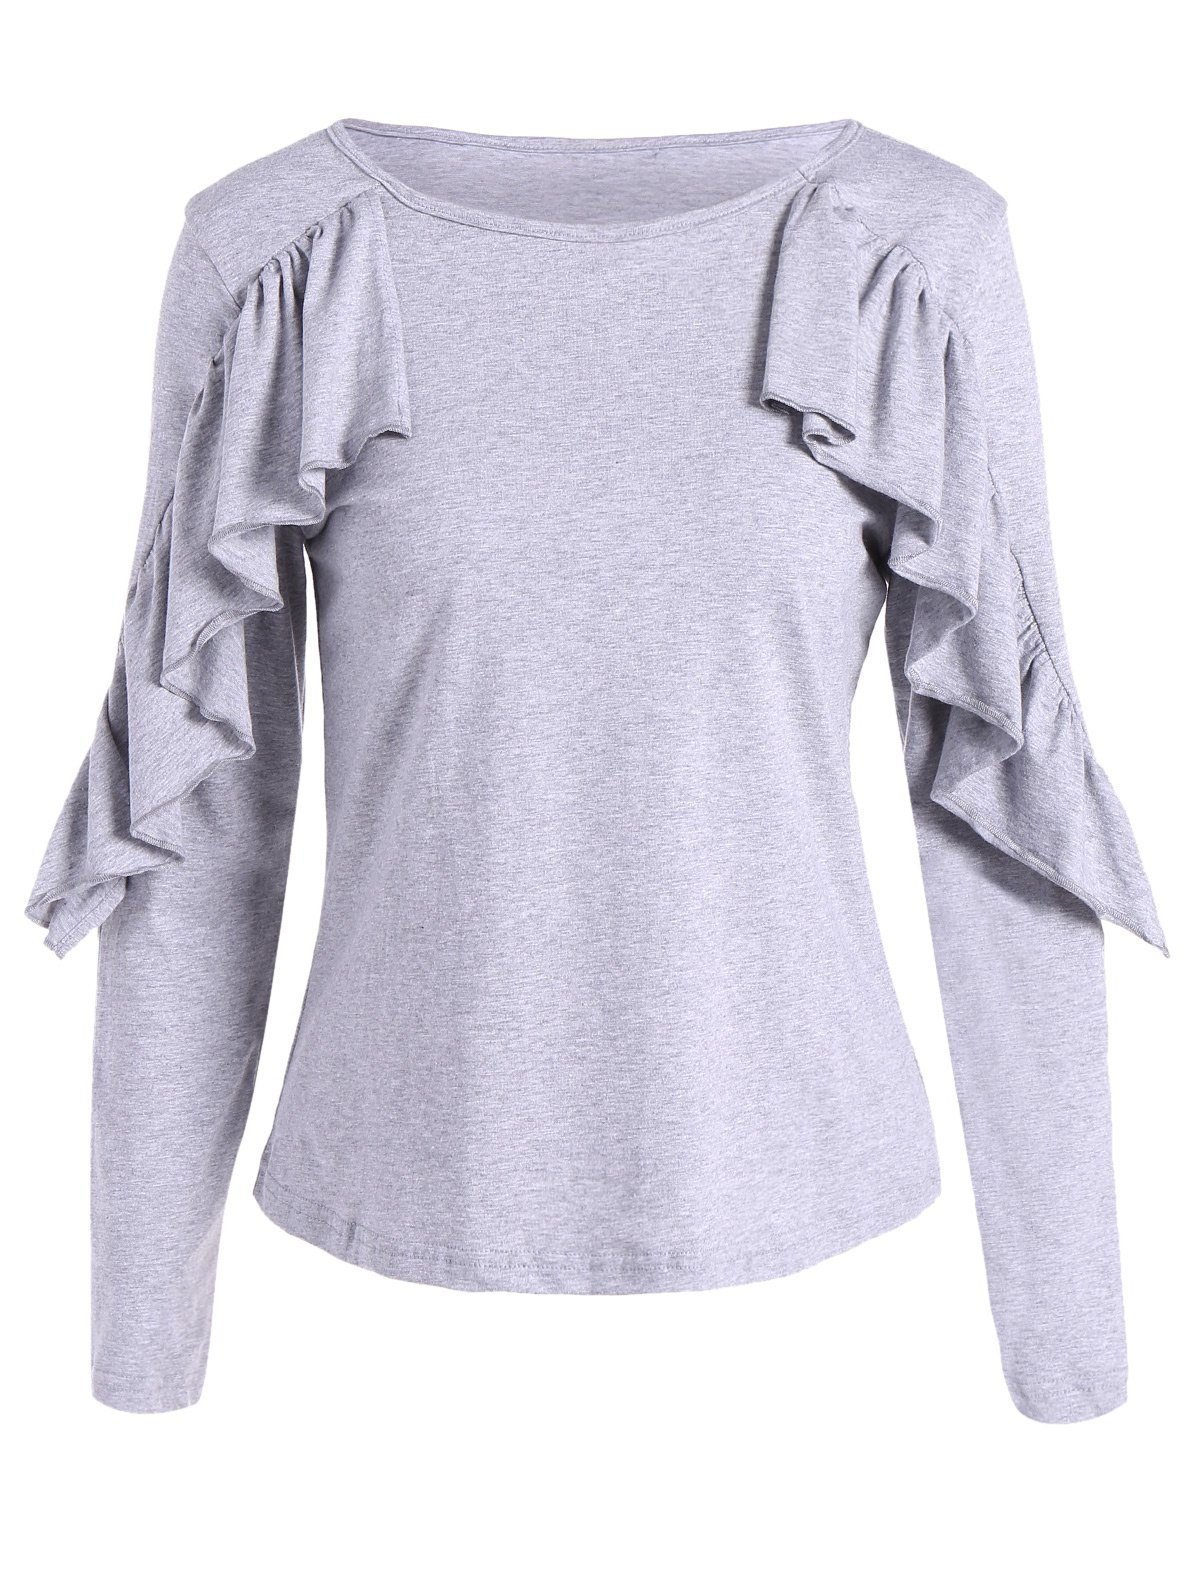 Discount Long Sleeves T-Shirt With Frill